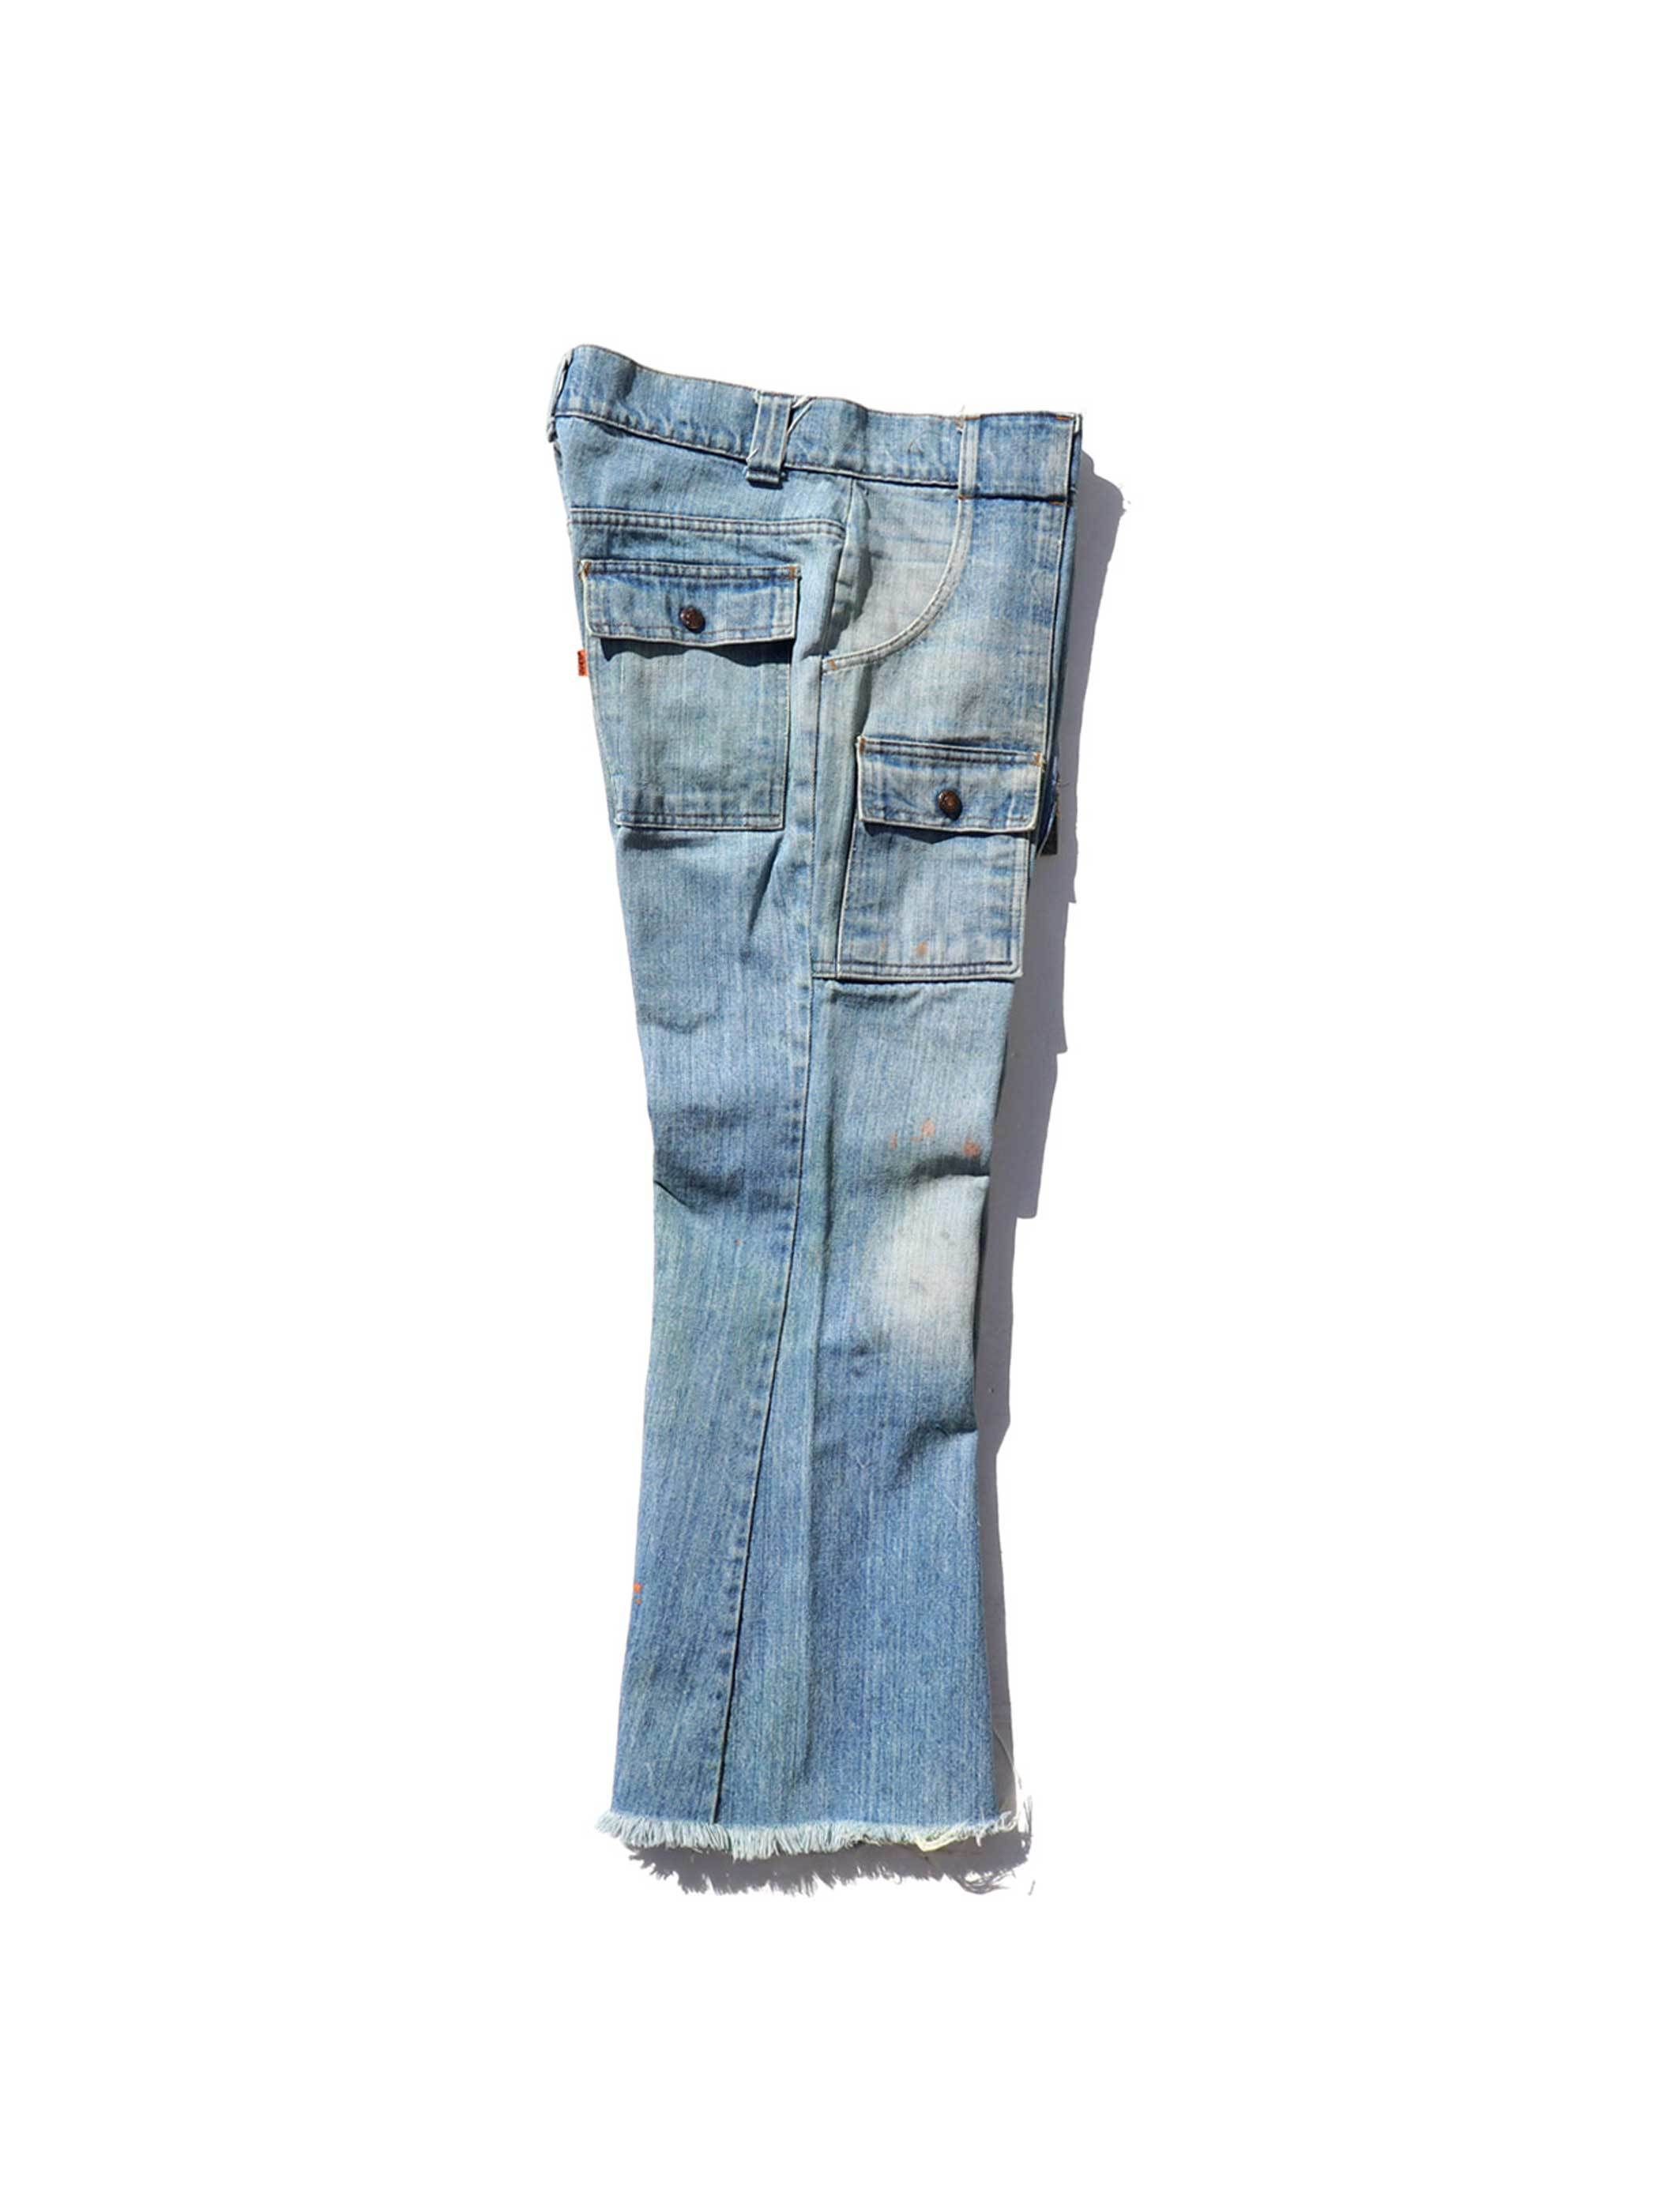 70's LEVI'S 676 Cut Off Bush Denim Pants [W33]